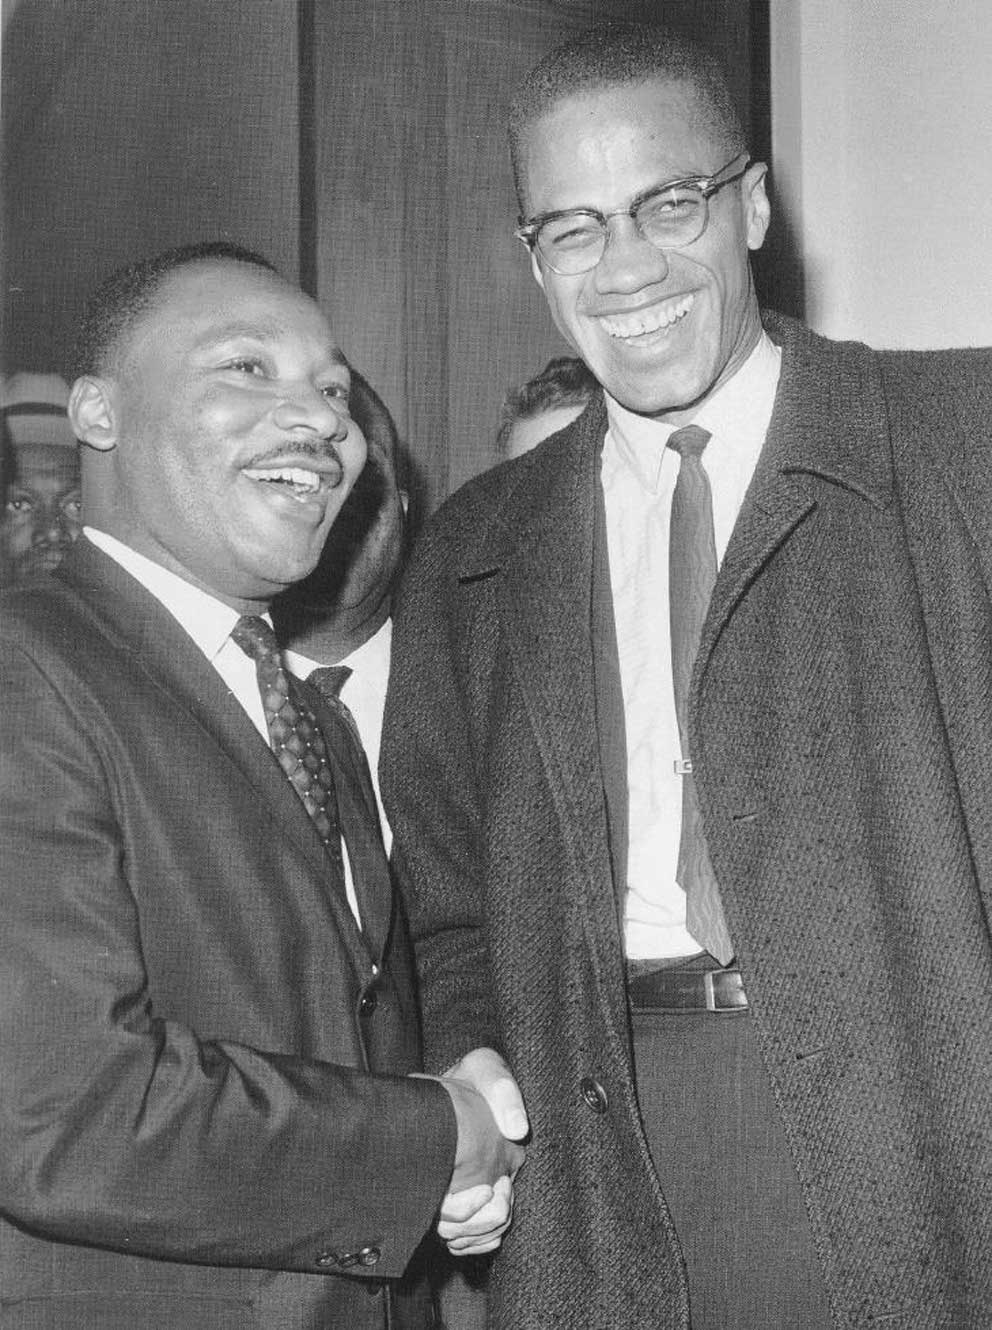 an analysis of the life and philosophies of malcolm x an american muslim minister Hop and its connection with malcolm x, the african american muslim  movements and philosophies,  they advocated for 46 the life of malcolm x.